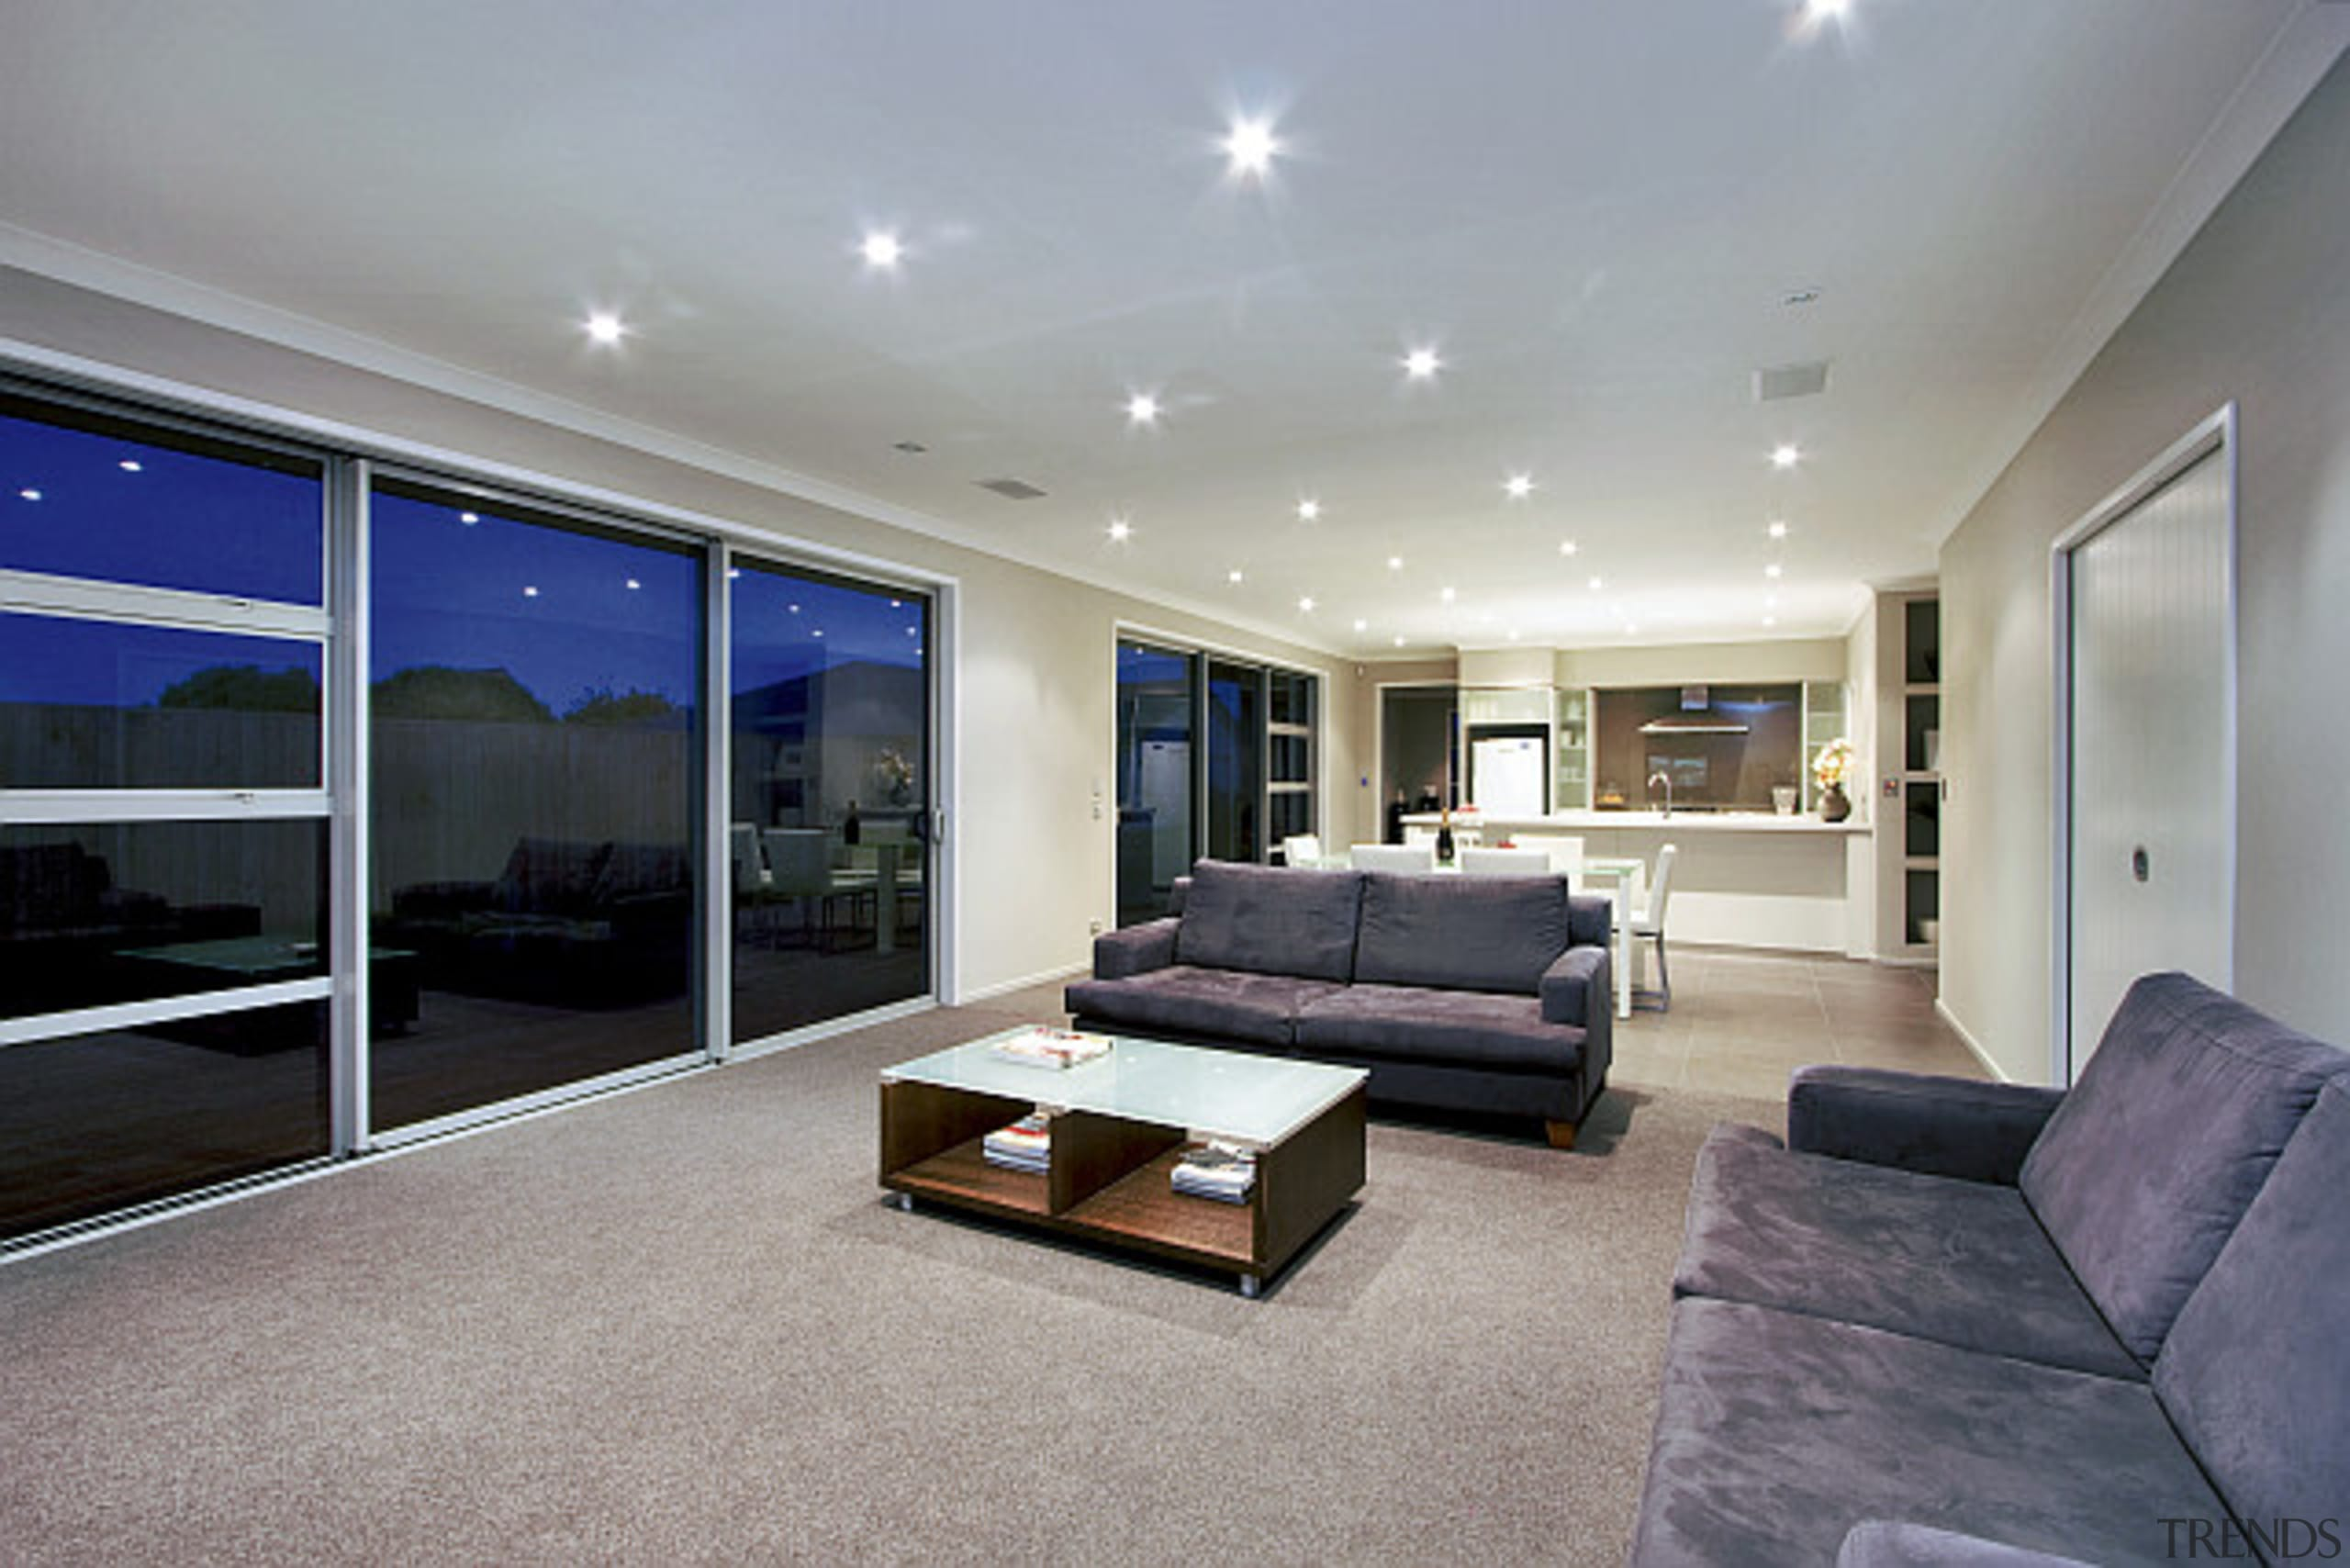 Open plan living area that flows seamlessly to ceiling, daylighting, estate, floor, interior design, living room, property, real estate, window, gray